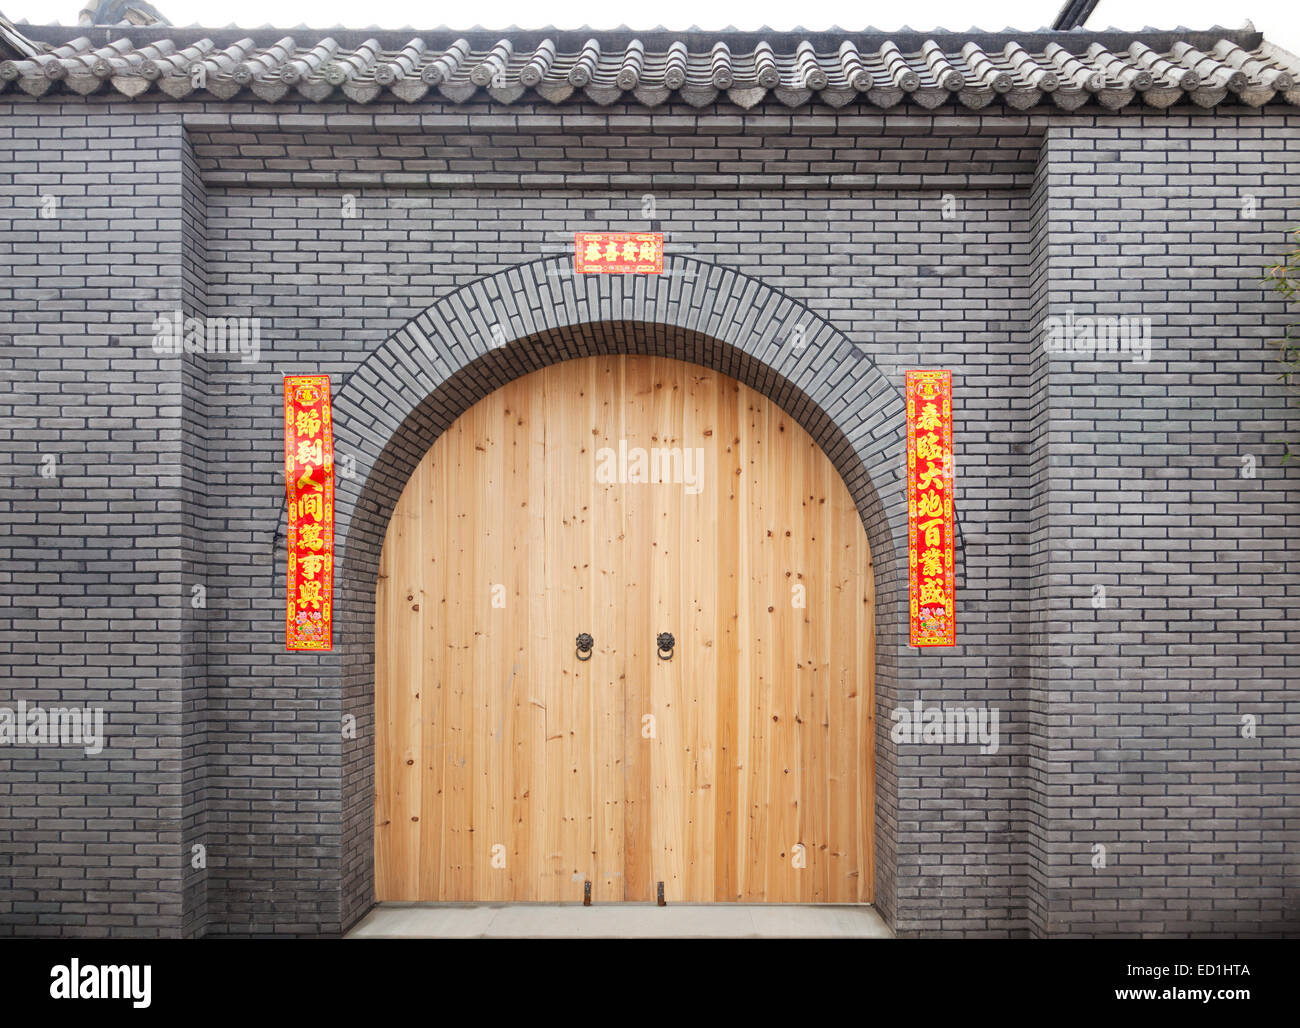 Chinese Traditional Door With An Red Antithetical Spring Couplet For New Year